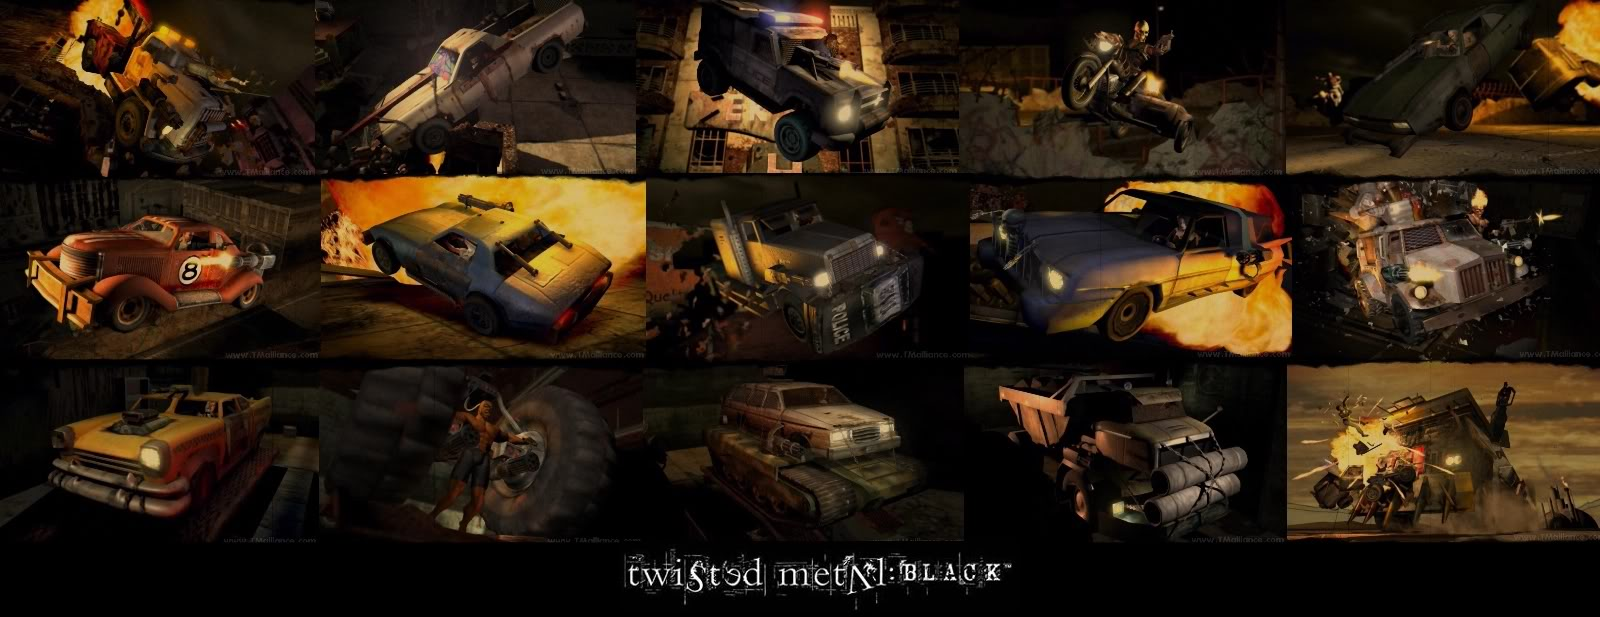 twisted metal black twisted metal wiki fandom powered by wikia